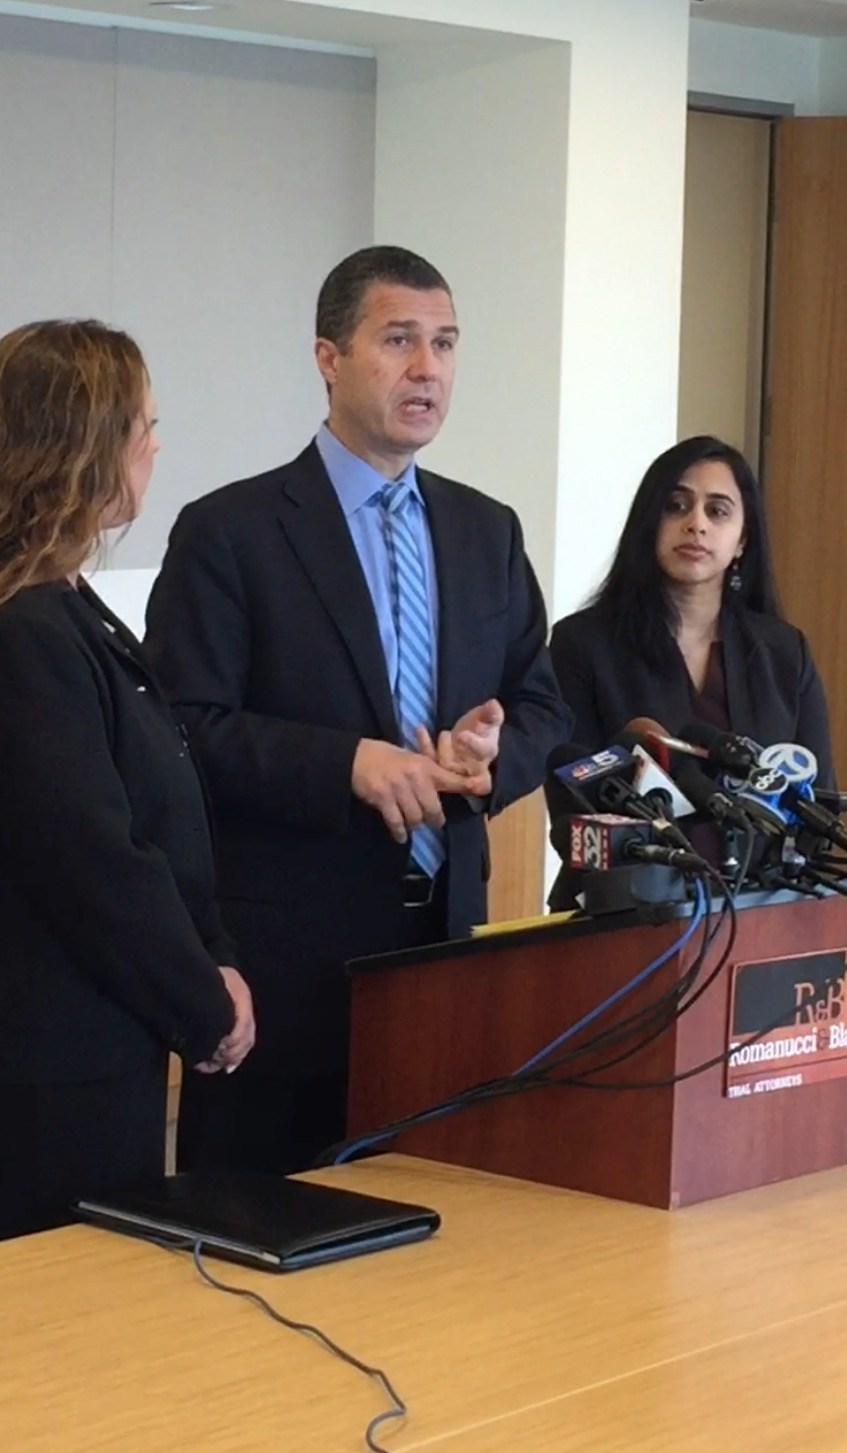 Chicago Personal Injury Law Firm Romanucci & Blandin announce Lawsuit on behalf of parents of Lake Zurich High School students for acts of hazing and bullying. Left to right are attorney Gina A. DeBoni, lead attorney Antonio Romanucci and attorney Bhavani Raveendran.